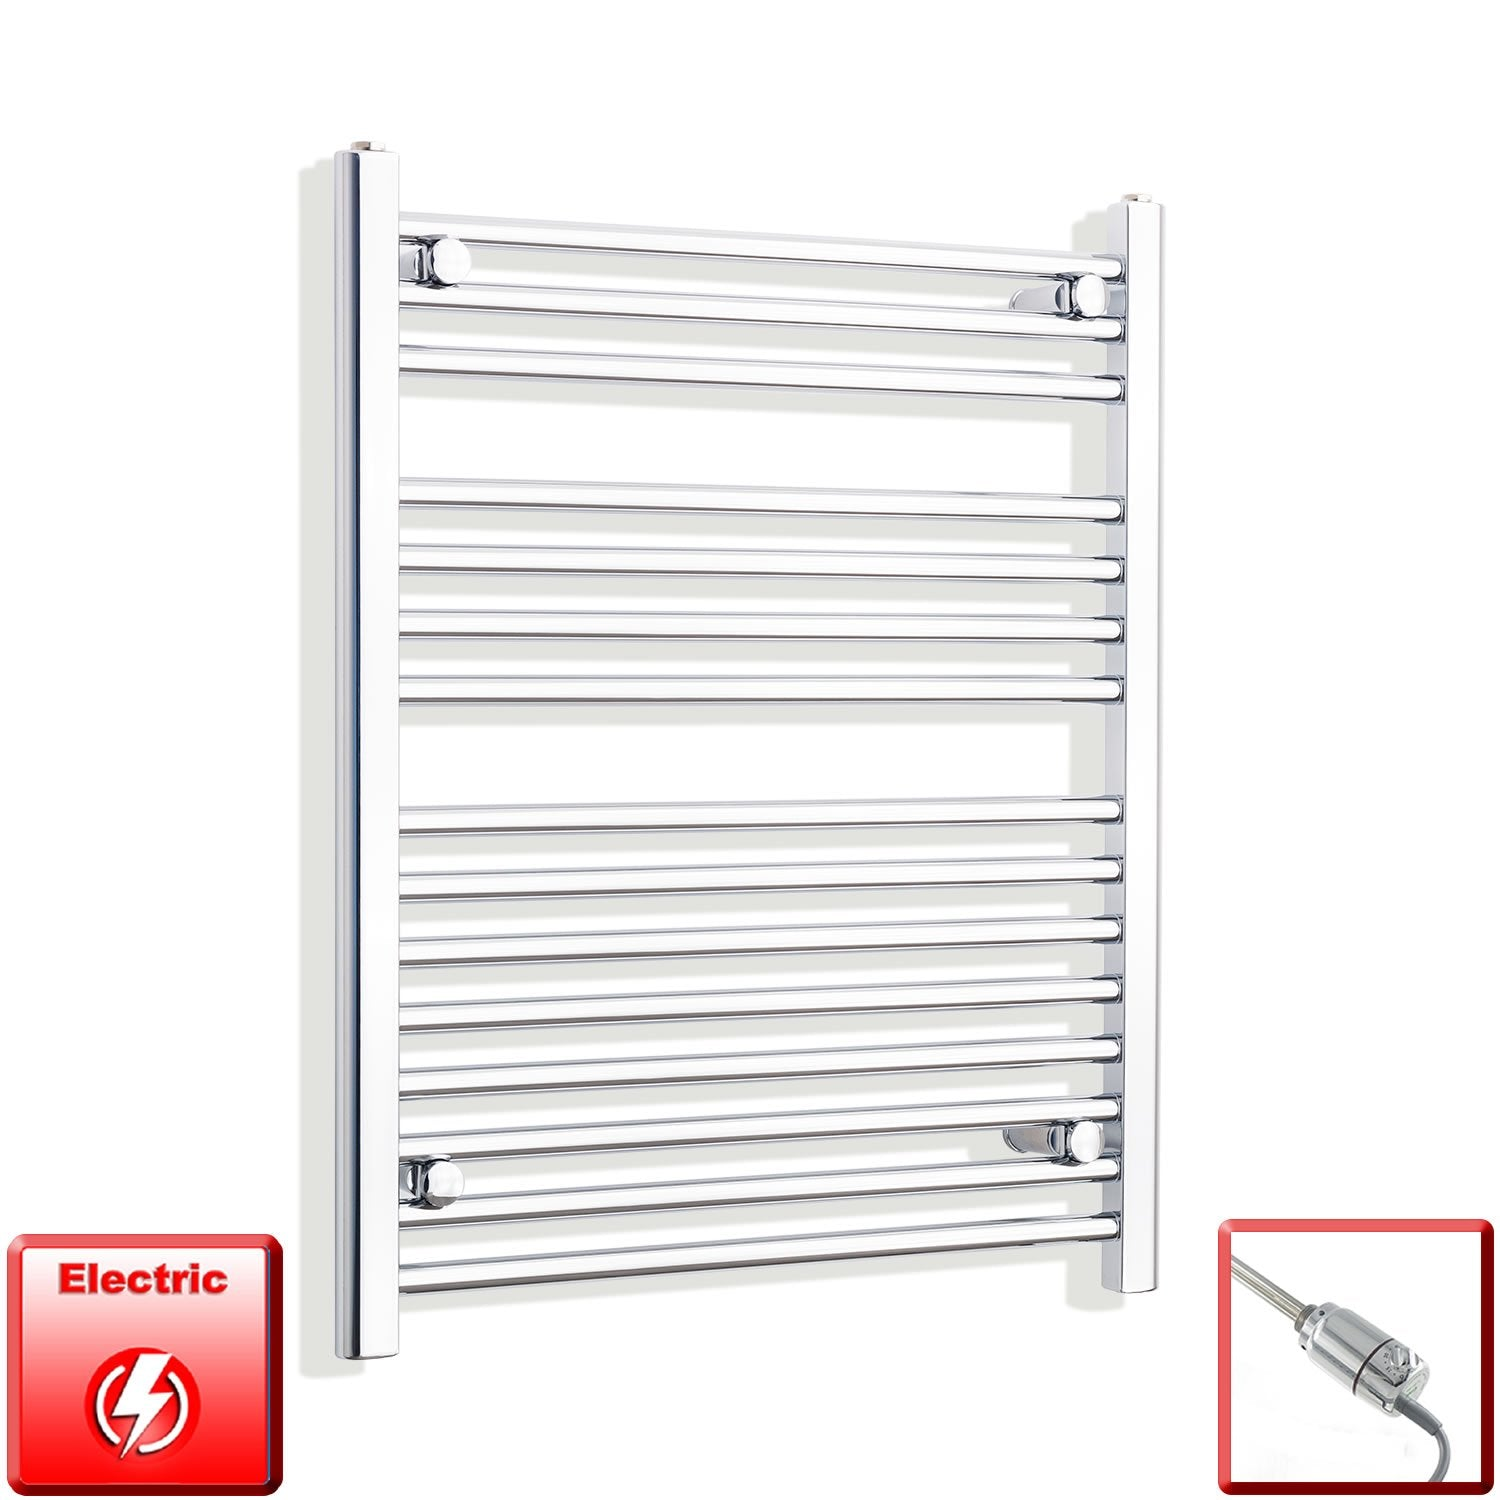 700mm Wide 800mm High Flat Or Curved Chrome Pre-Filled Electric Heated Towel Rail Radiator HTR,GT Thermostatic / Straight